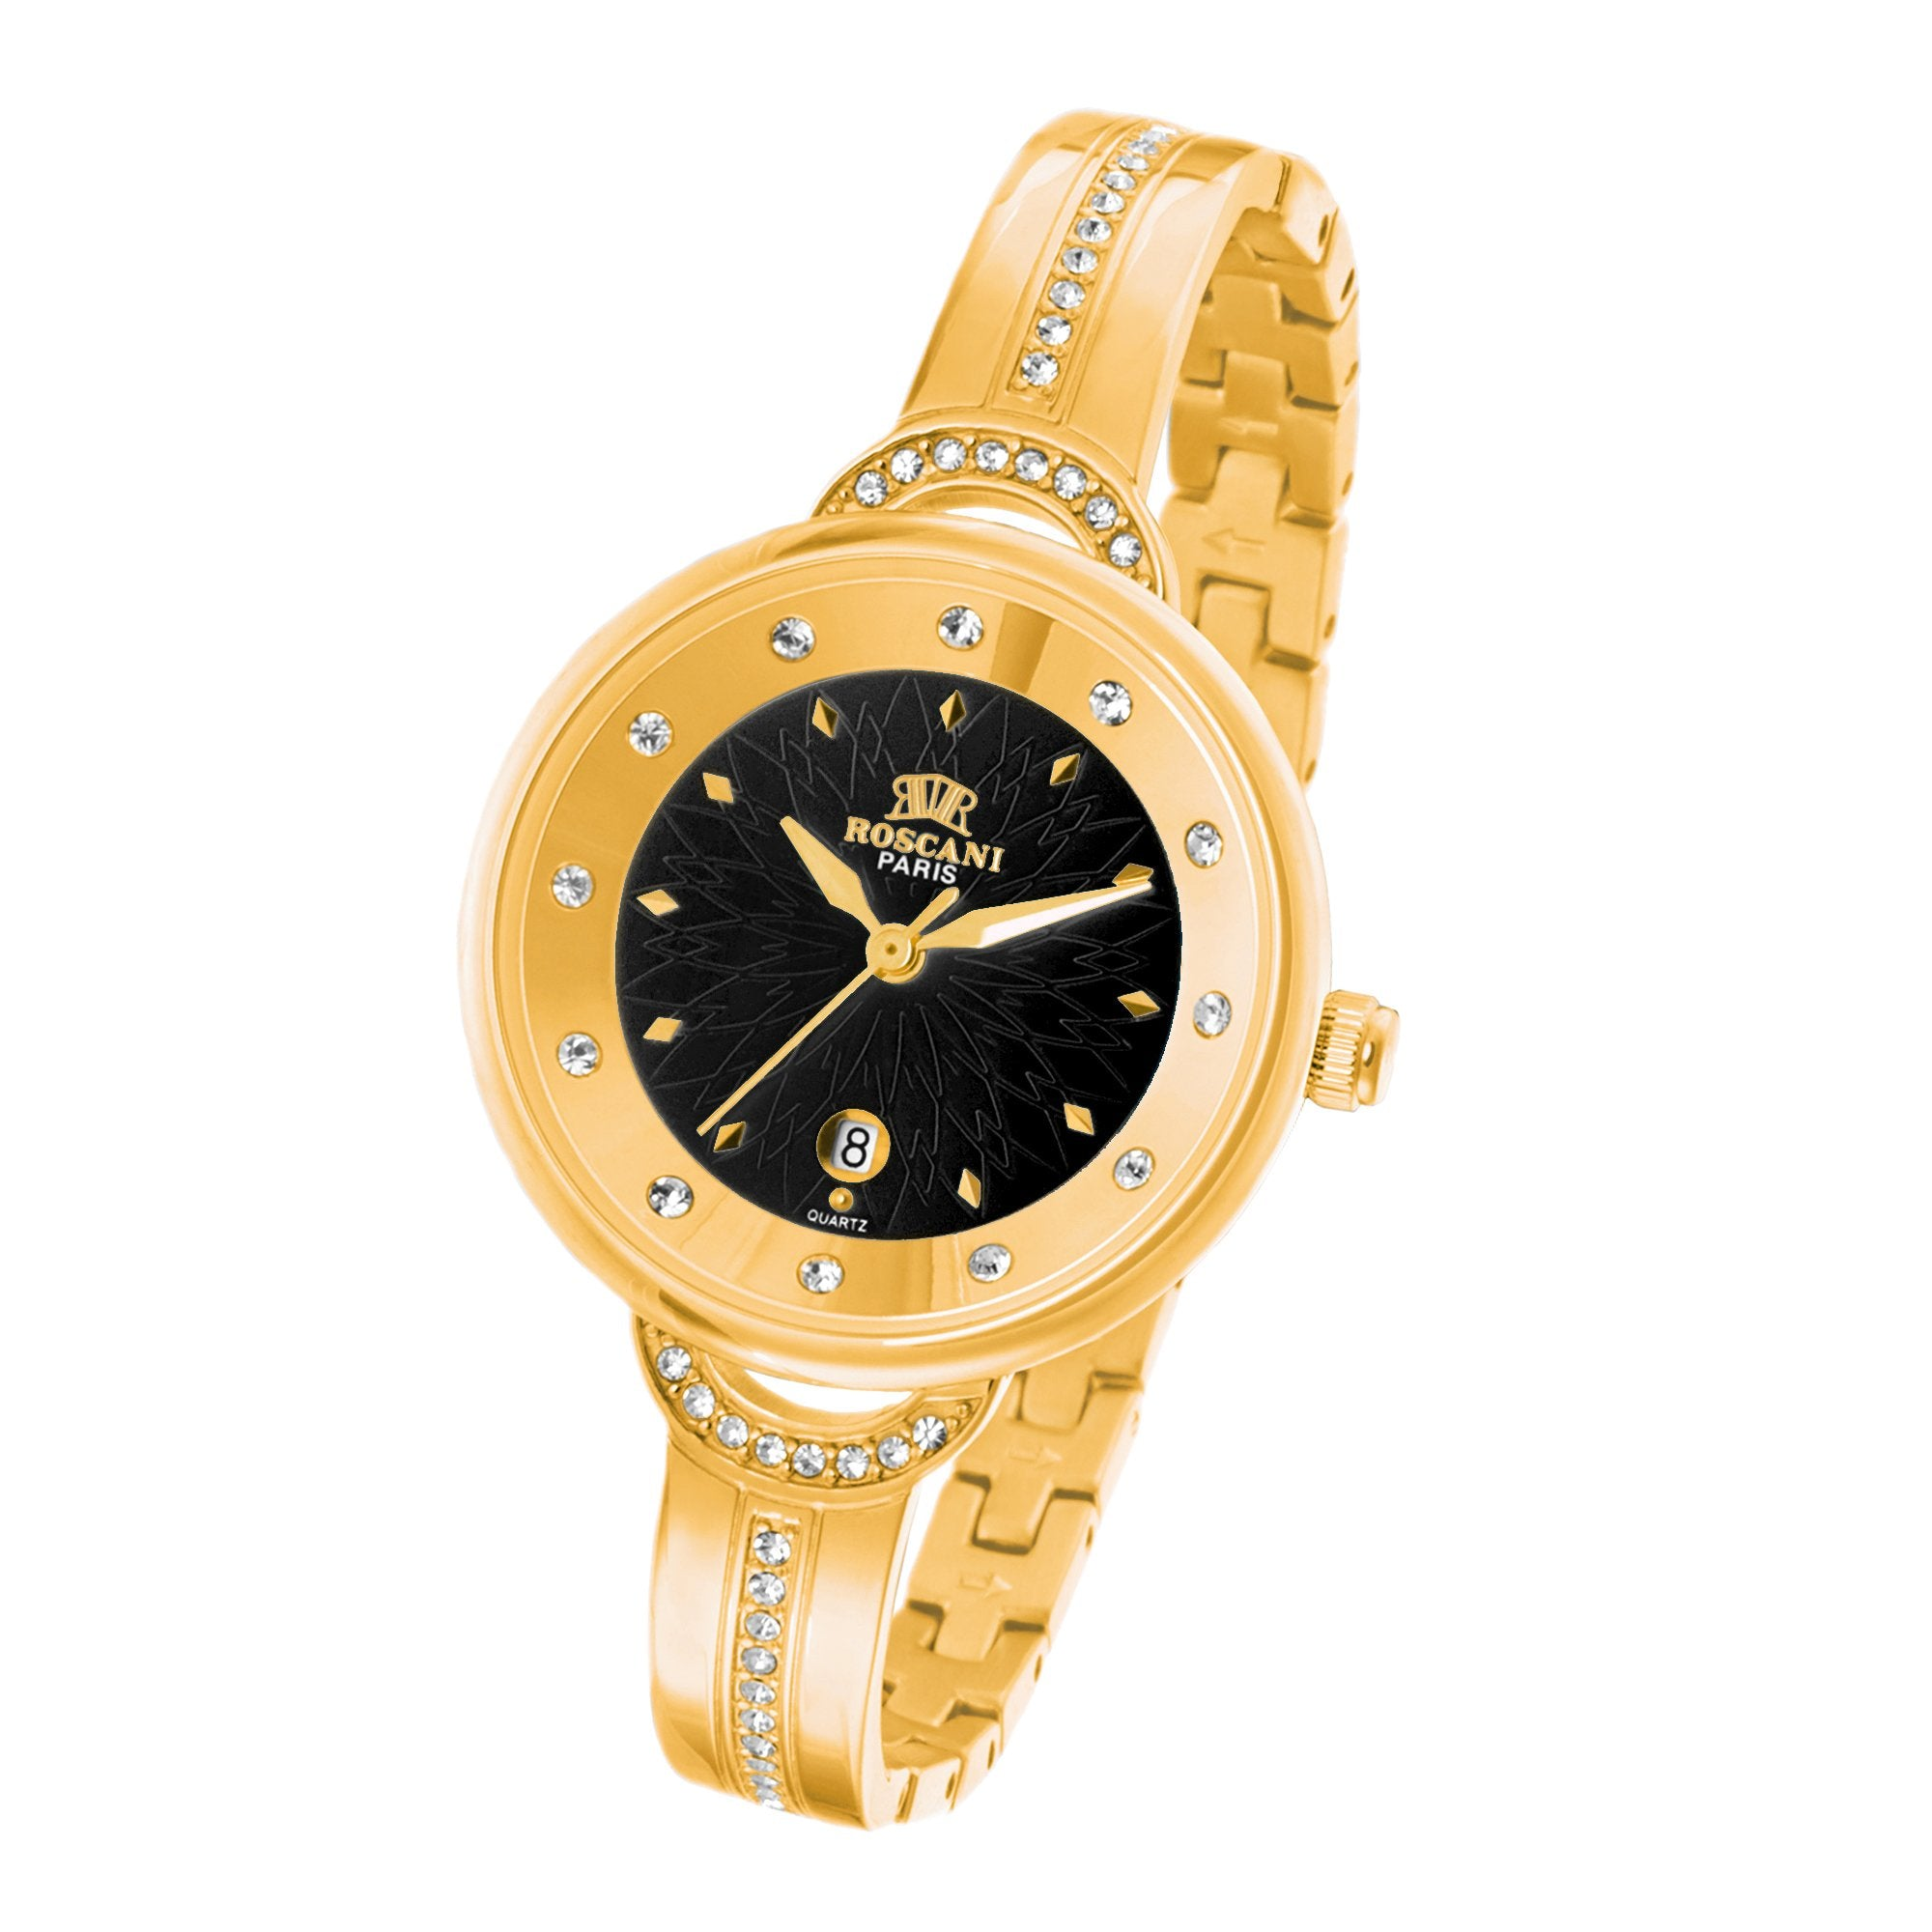 longines watches gold automatic elegant collection the image elegance